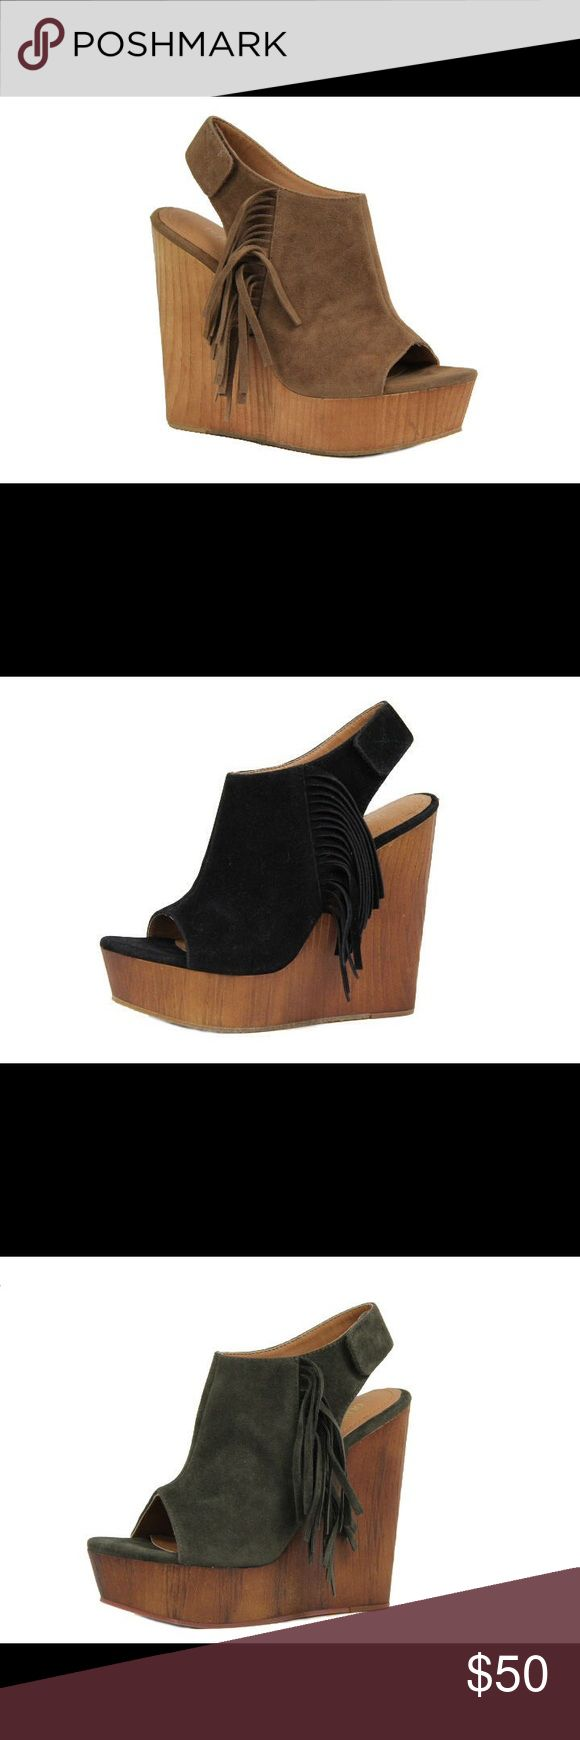 Ladies wedge sandal with side fringe. Camel. NIB Very stylish and comfy ladies wedge sandal with side fringe. Around 5 inches heels. Brand new in box, available also in olive and black colors and listed in my closet. Man made suede. NO TRADES shoeroom21 boutique Shoes Wedges